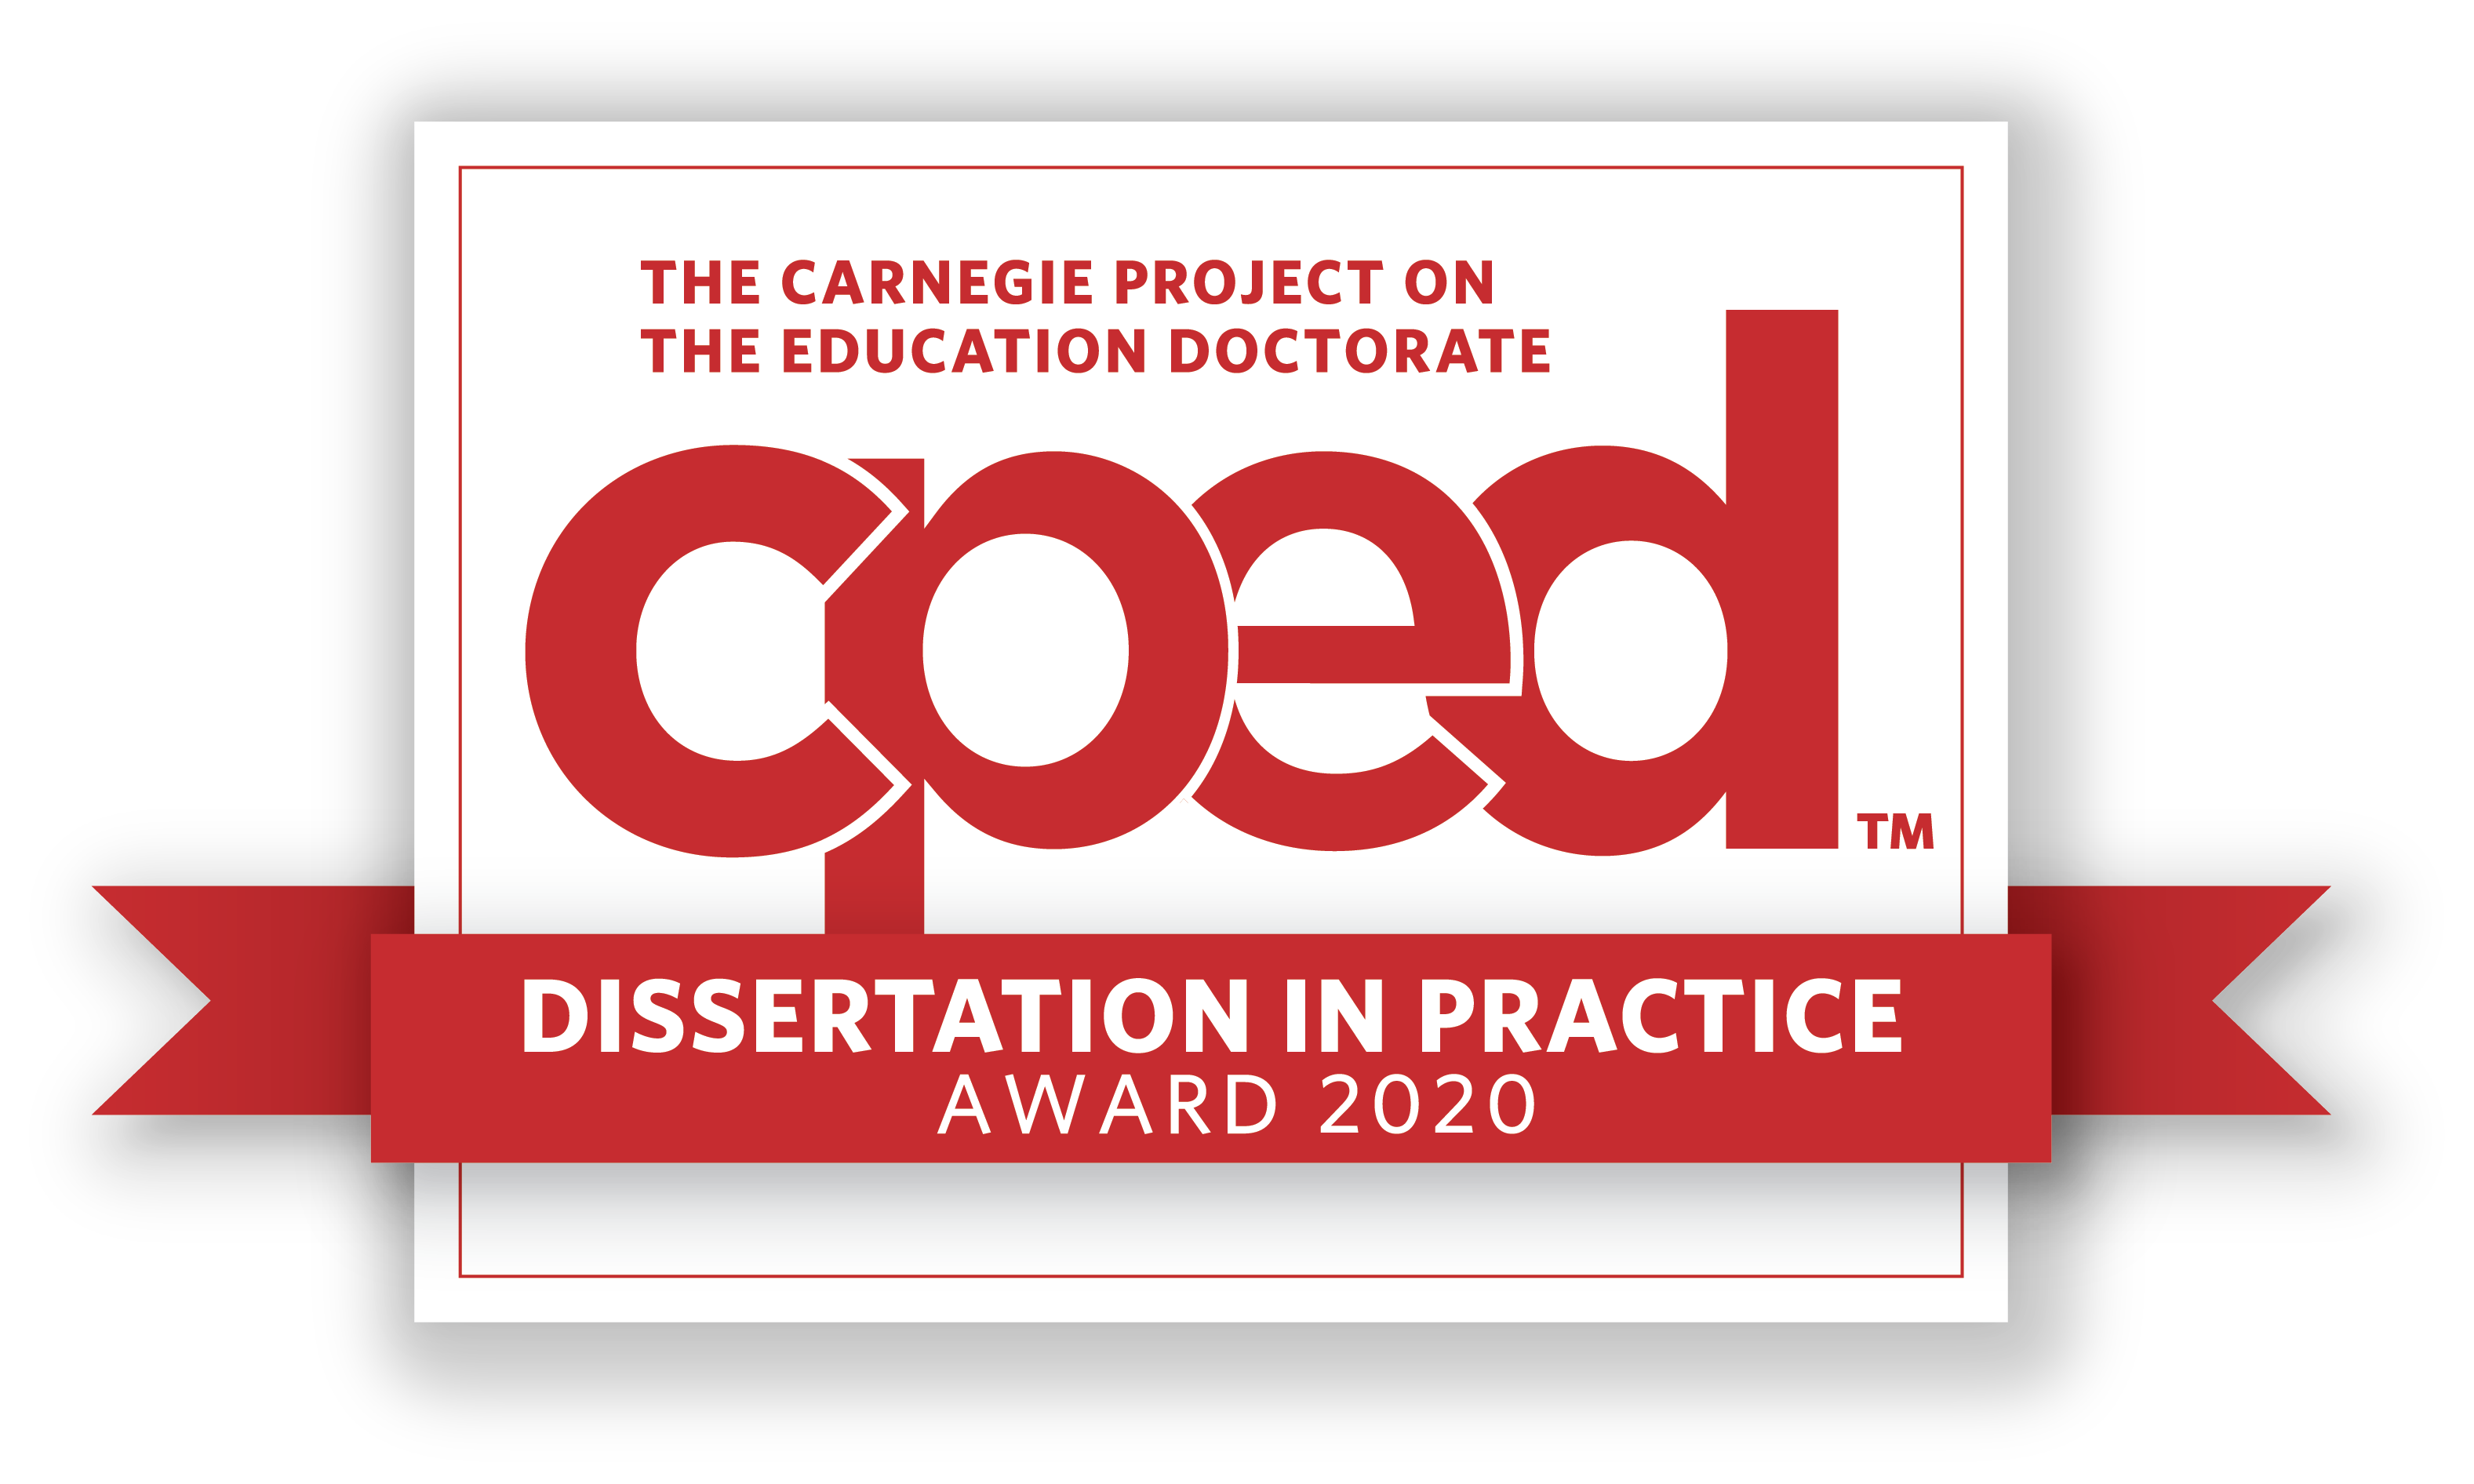 2020 Dissertation in Practice of the Year Award logo